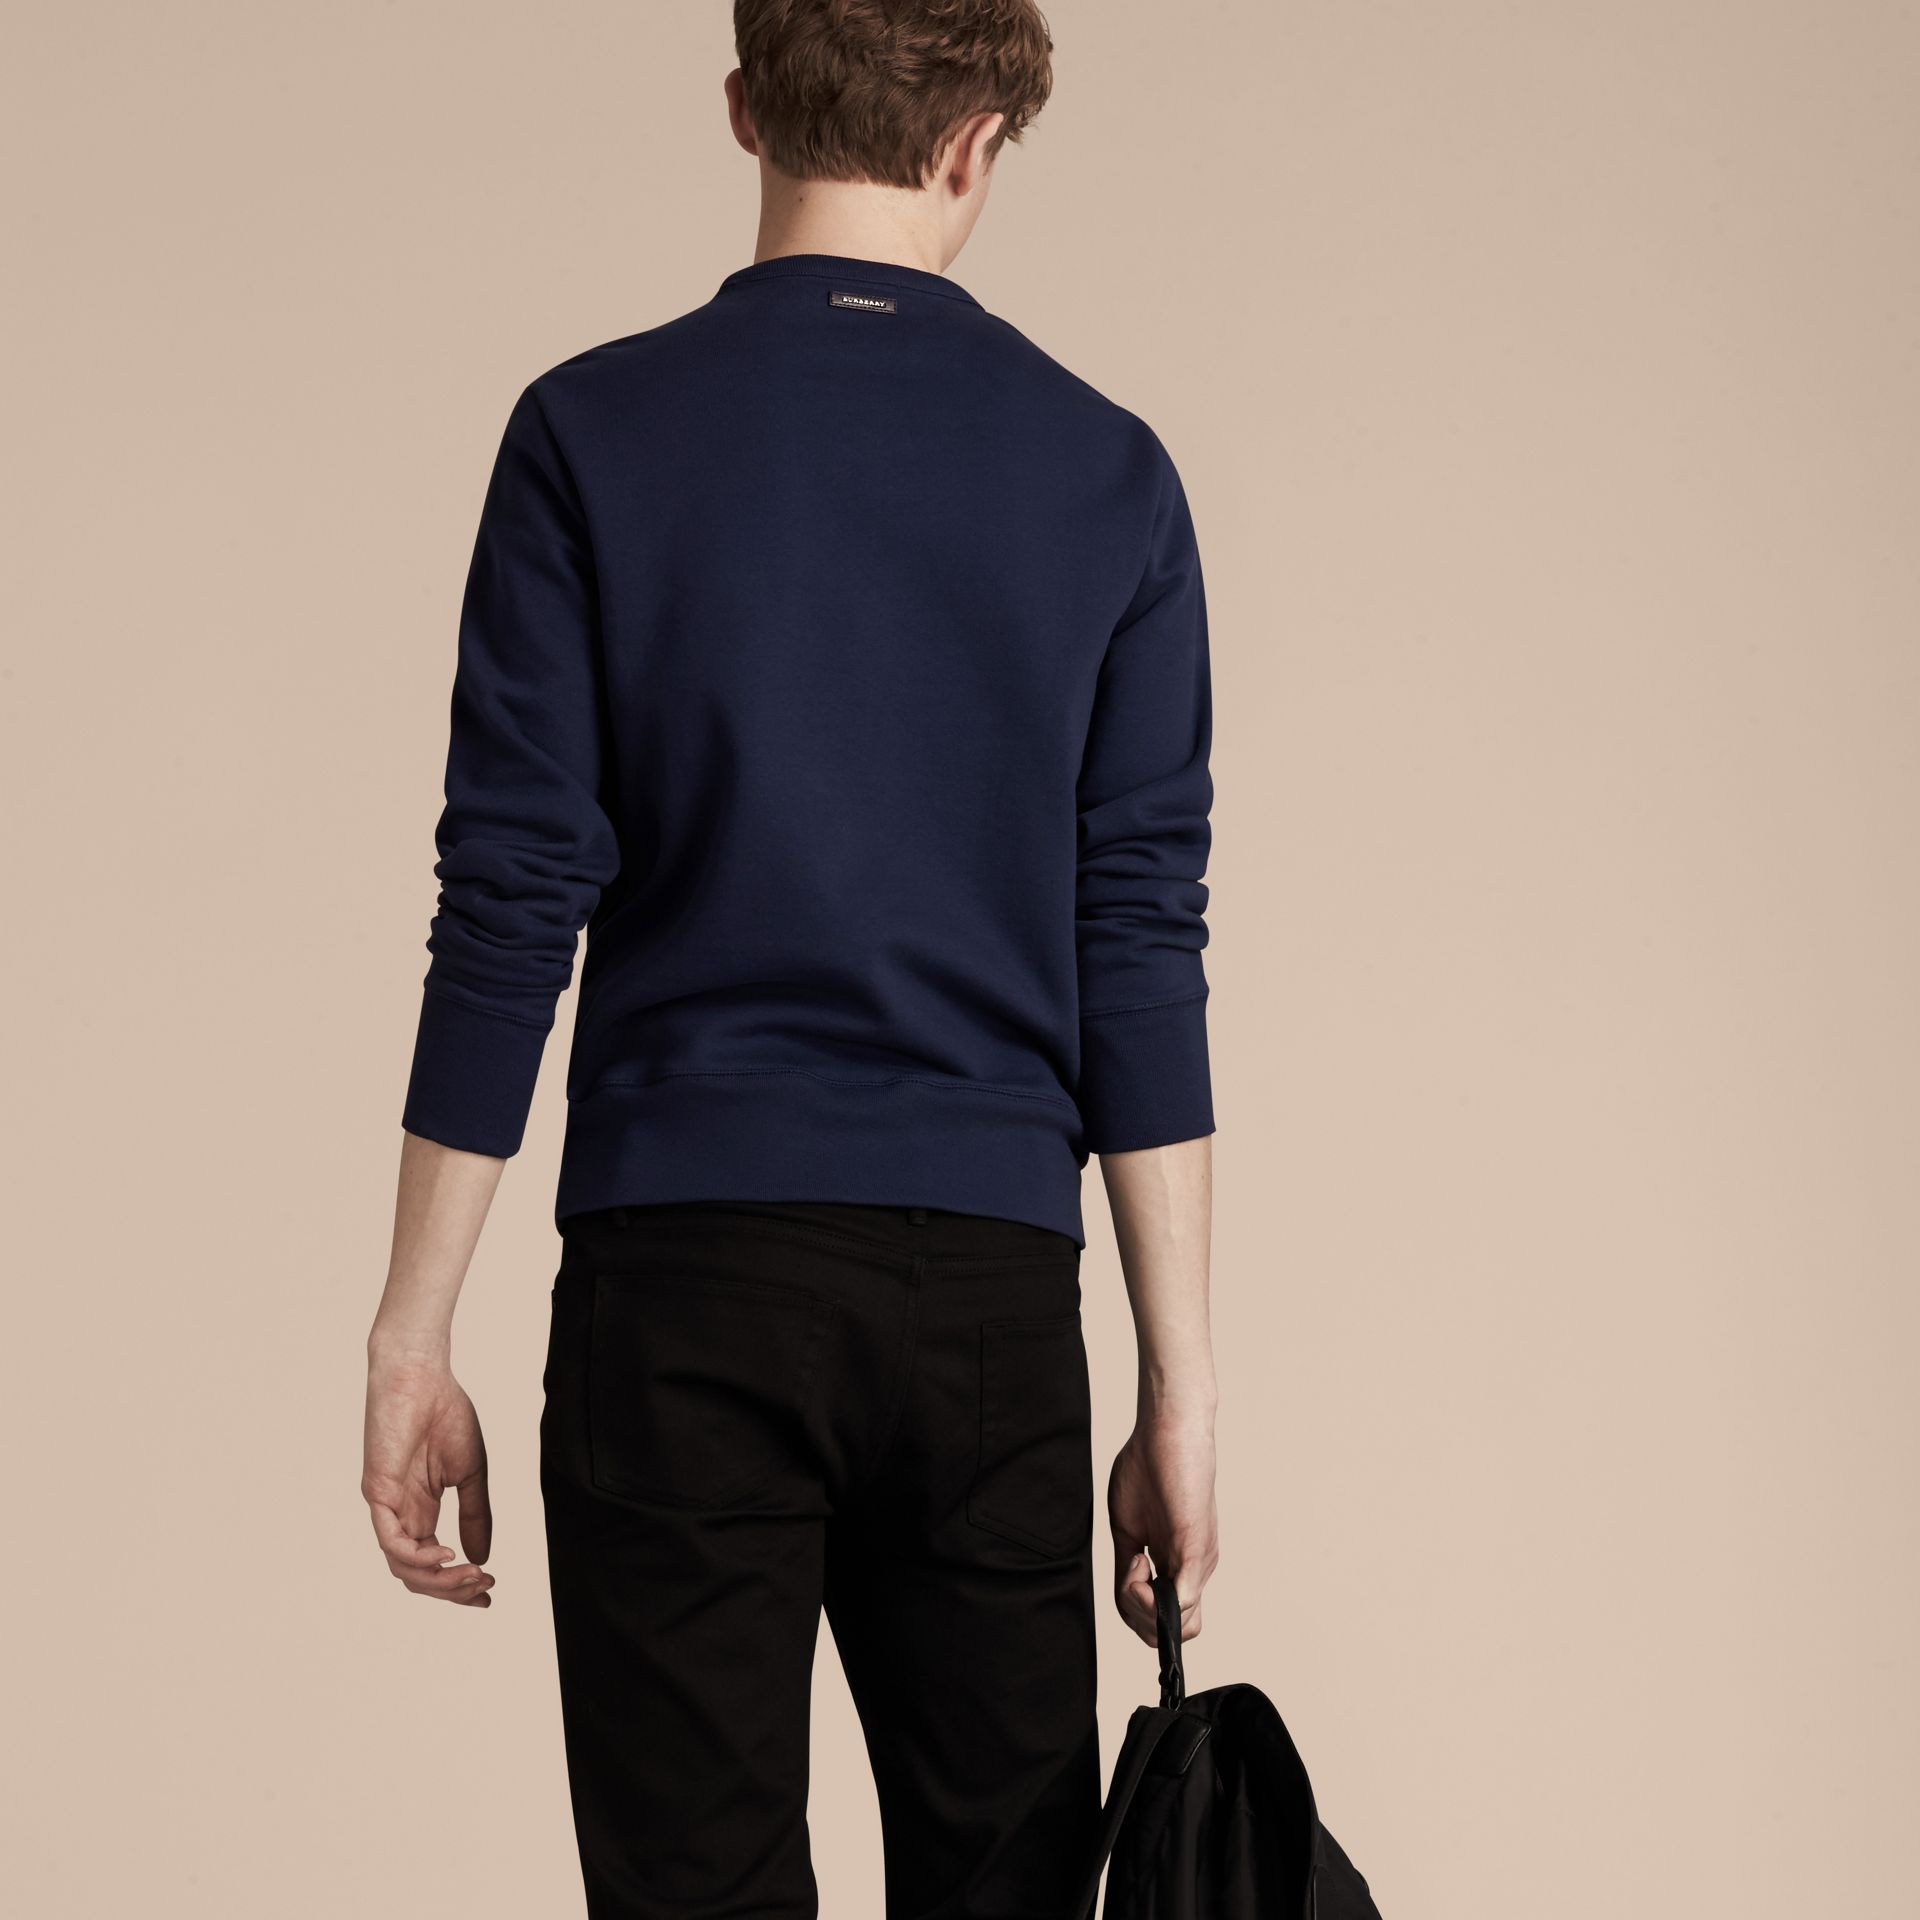 Indigo Colour Block Cotton and Lambskin Sweatshirt - gallery image 3